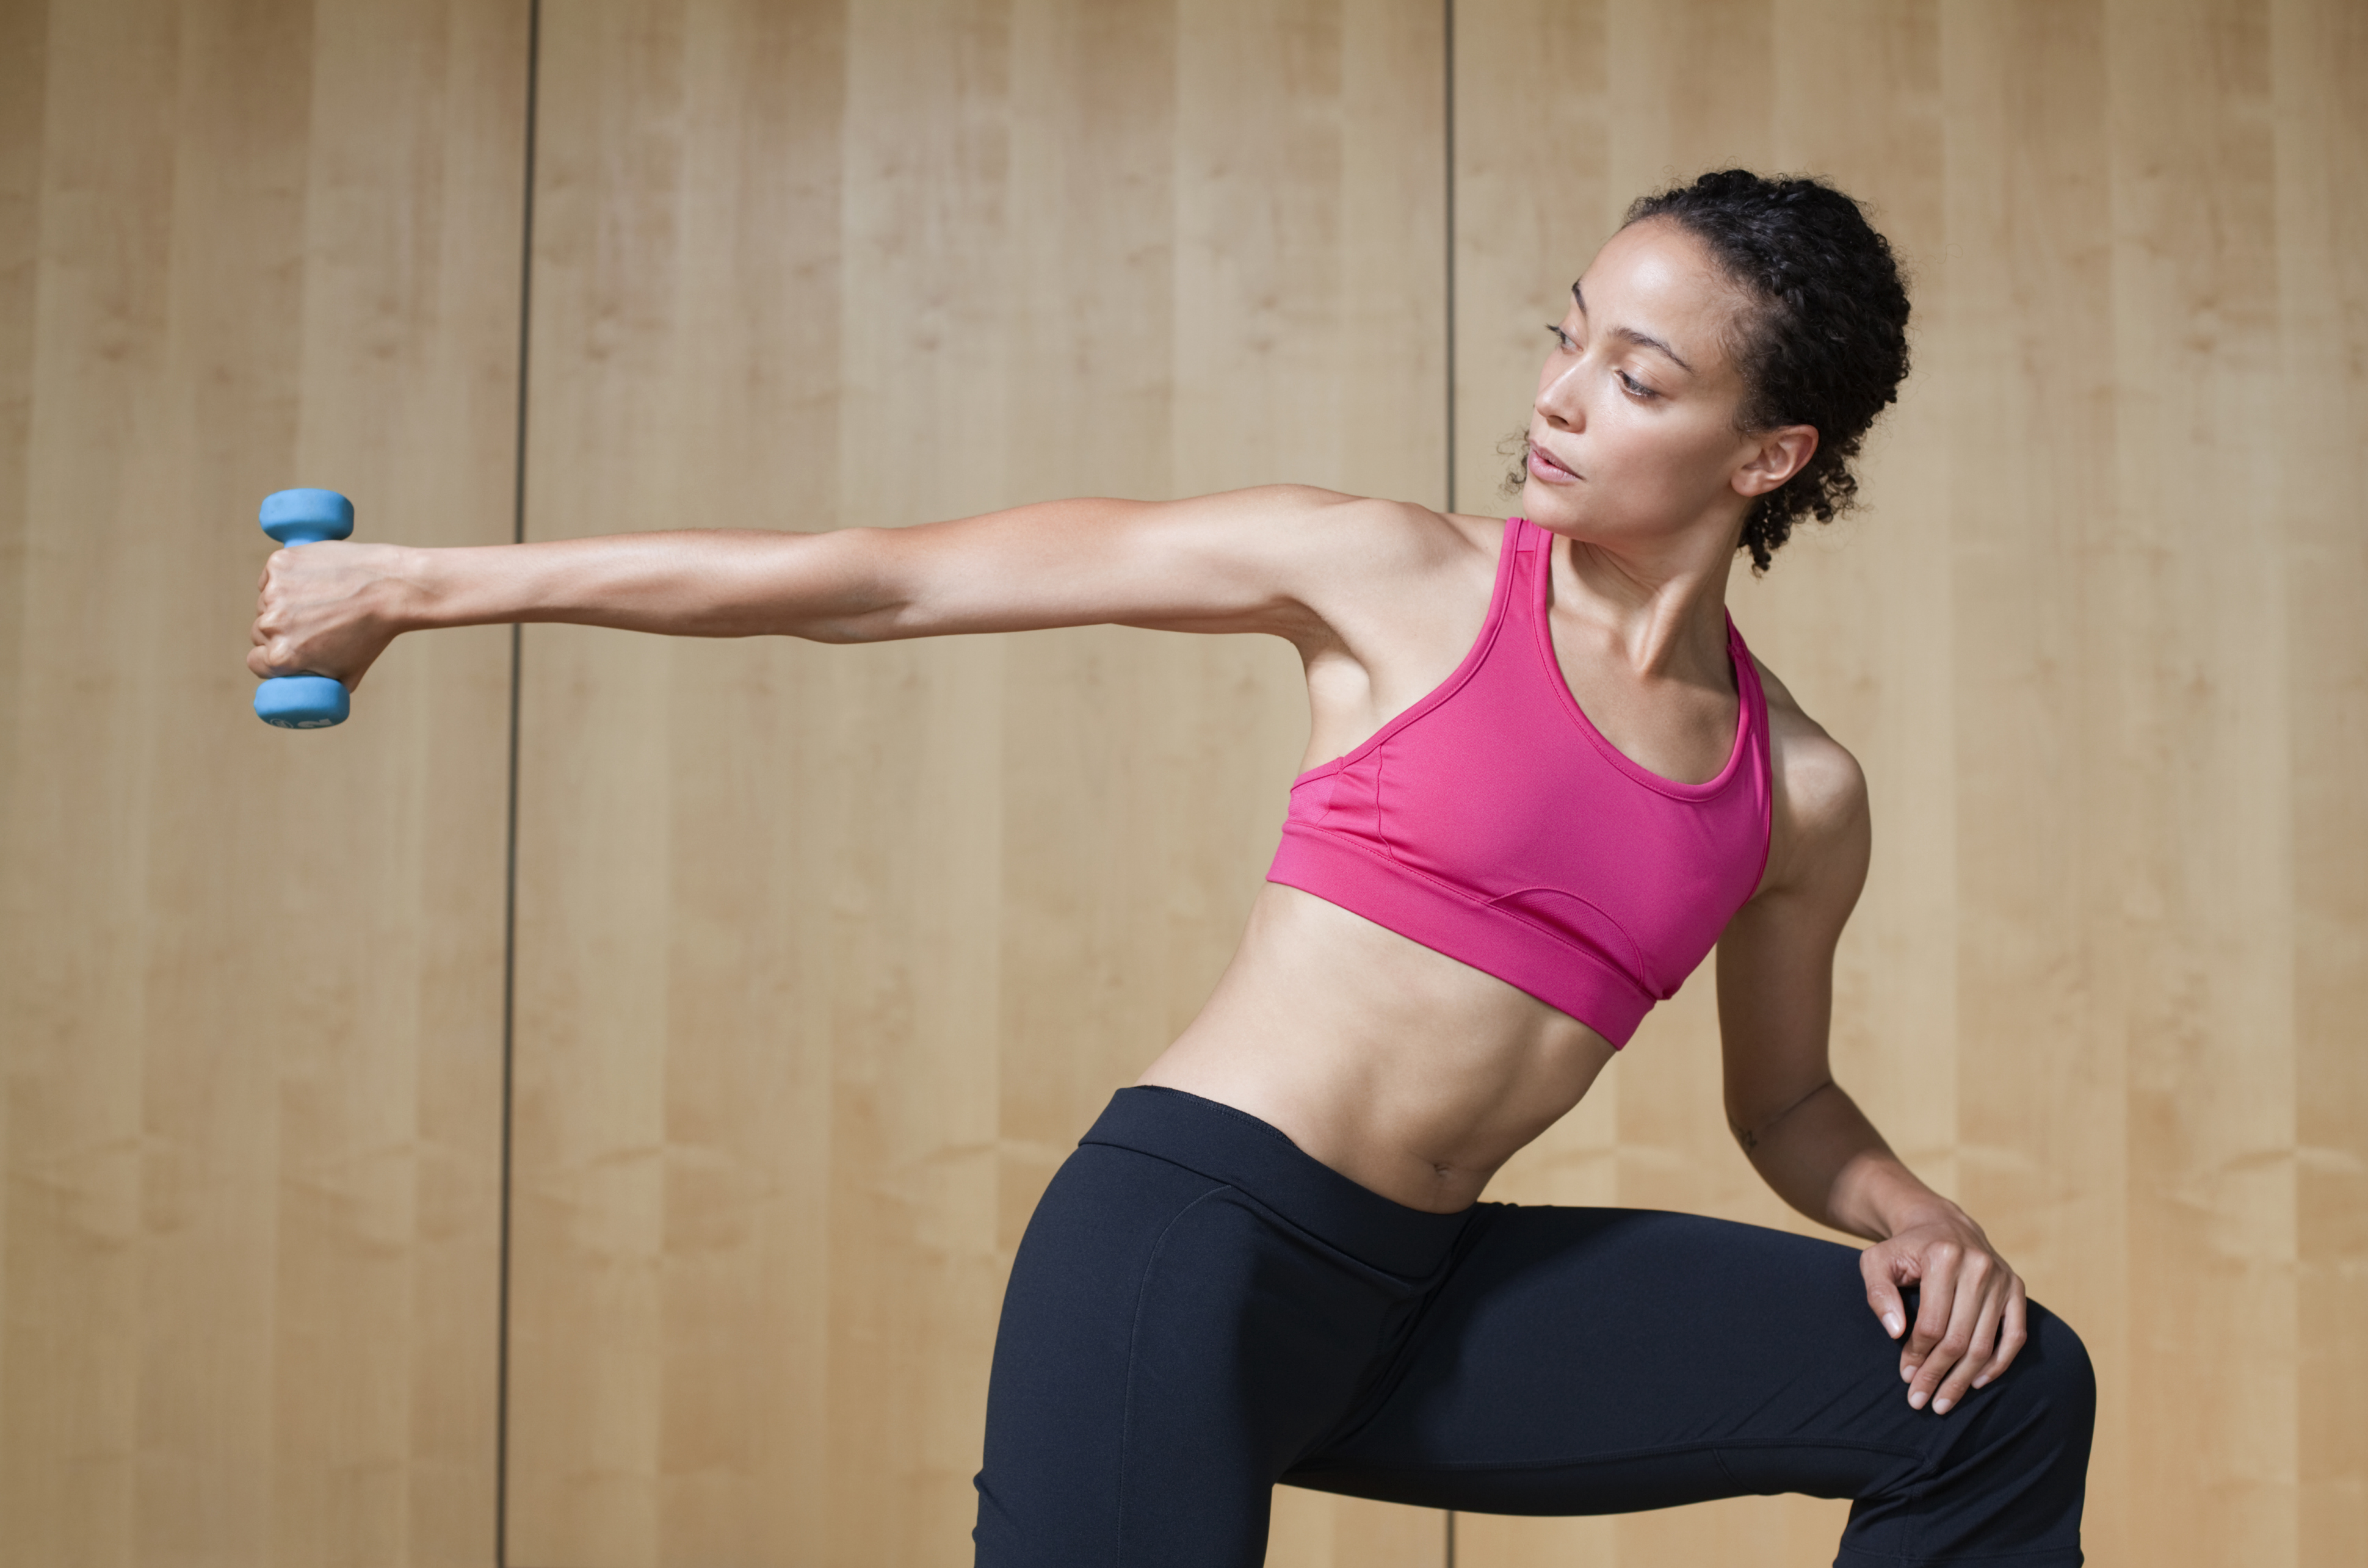 BRIDAL FITNESS: All About Arms